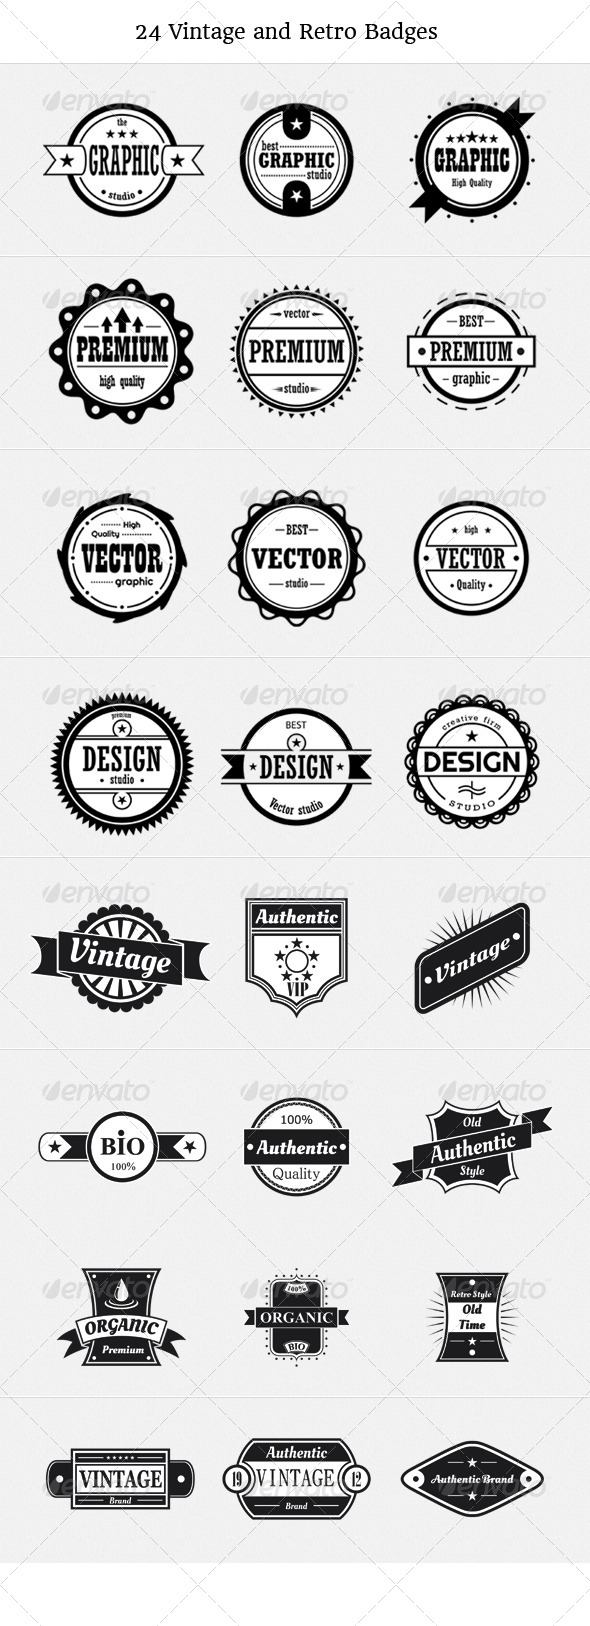 GraphicRiver 24 Vintage and Retro Badges 4577399